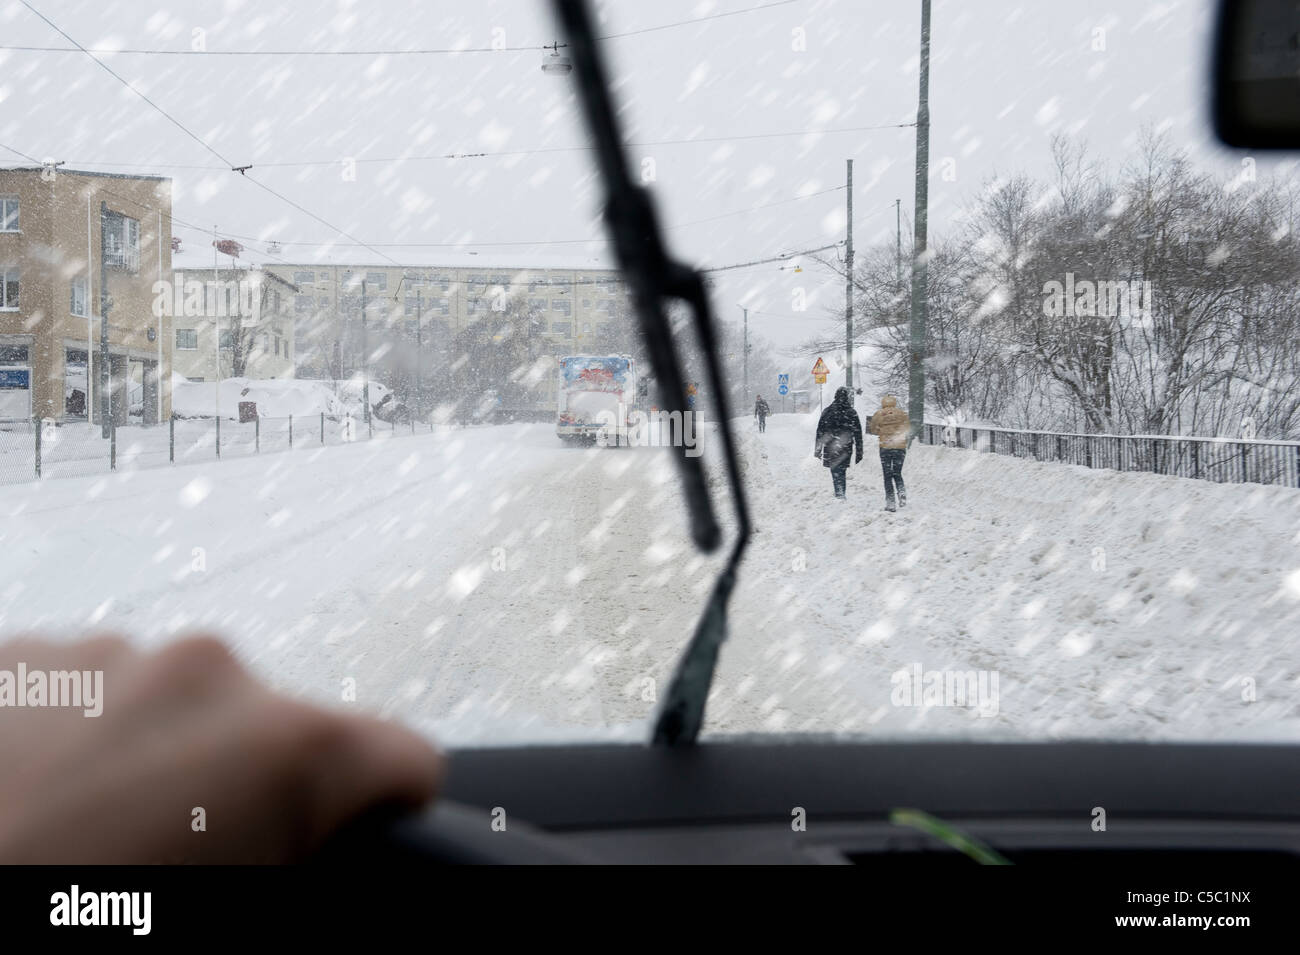 View of street snowfall from the car's windshield - Stock Image